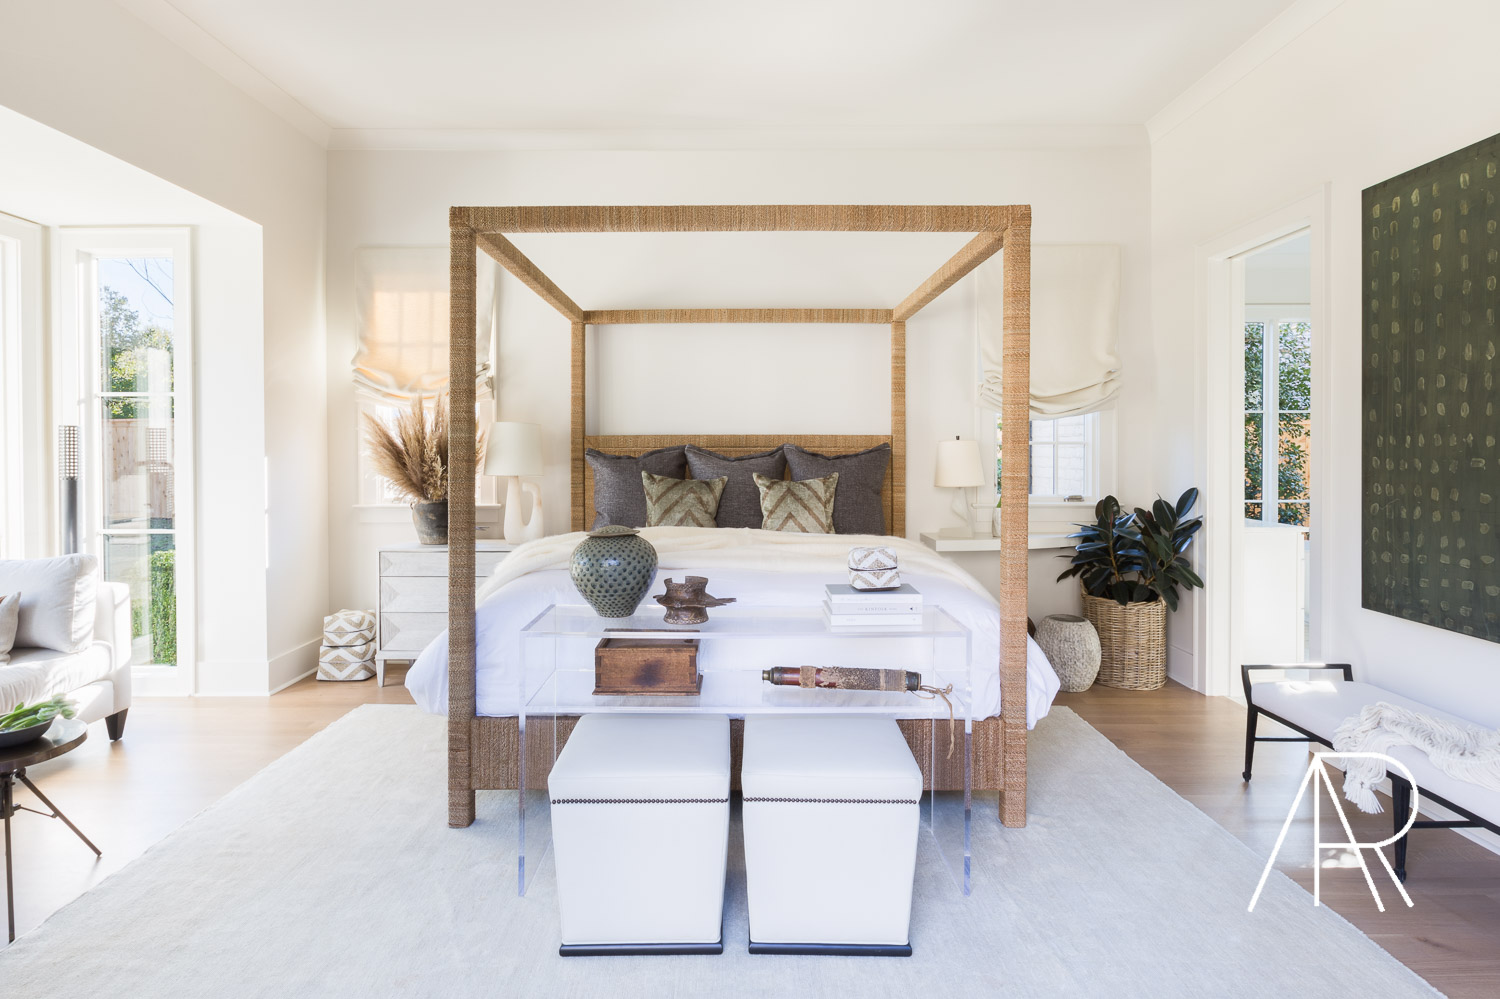 ©AlyssaRosenheck Alyssa Rosenheck's The New Southern Designer Spotlight with Sean Anderson, Interior Designer of Memphis, TN Master Bedroom